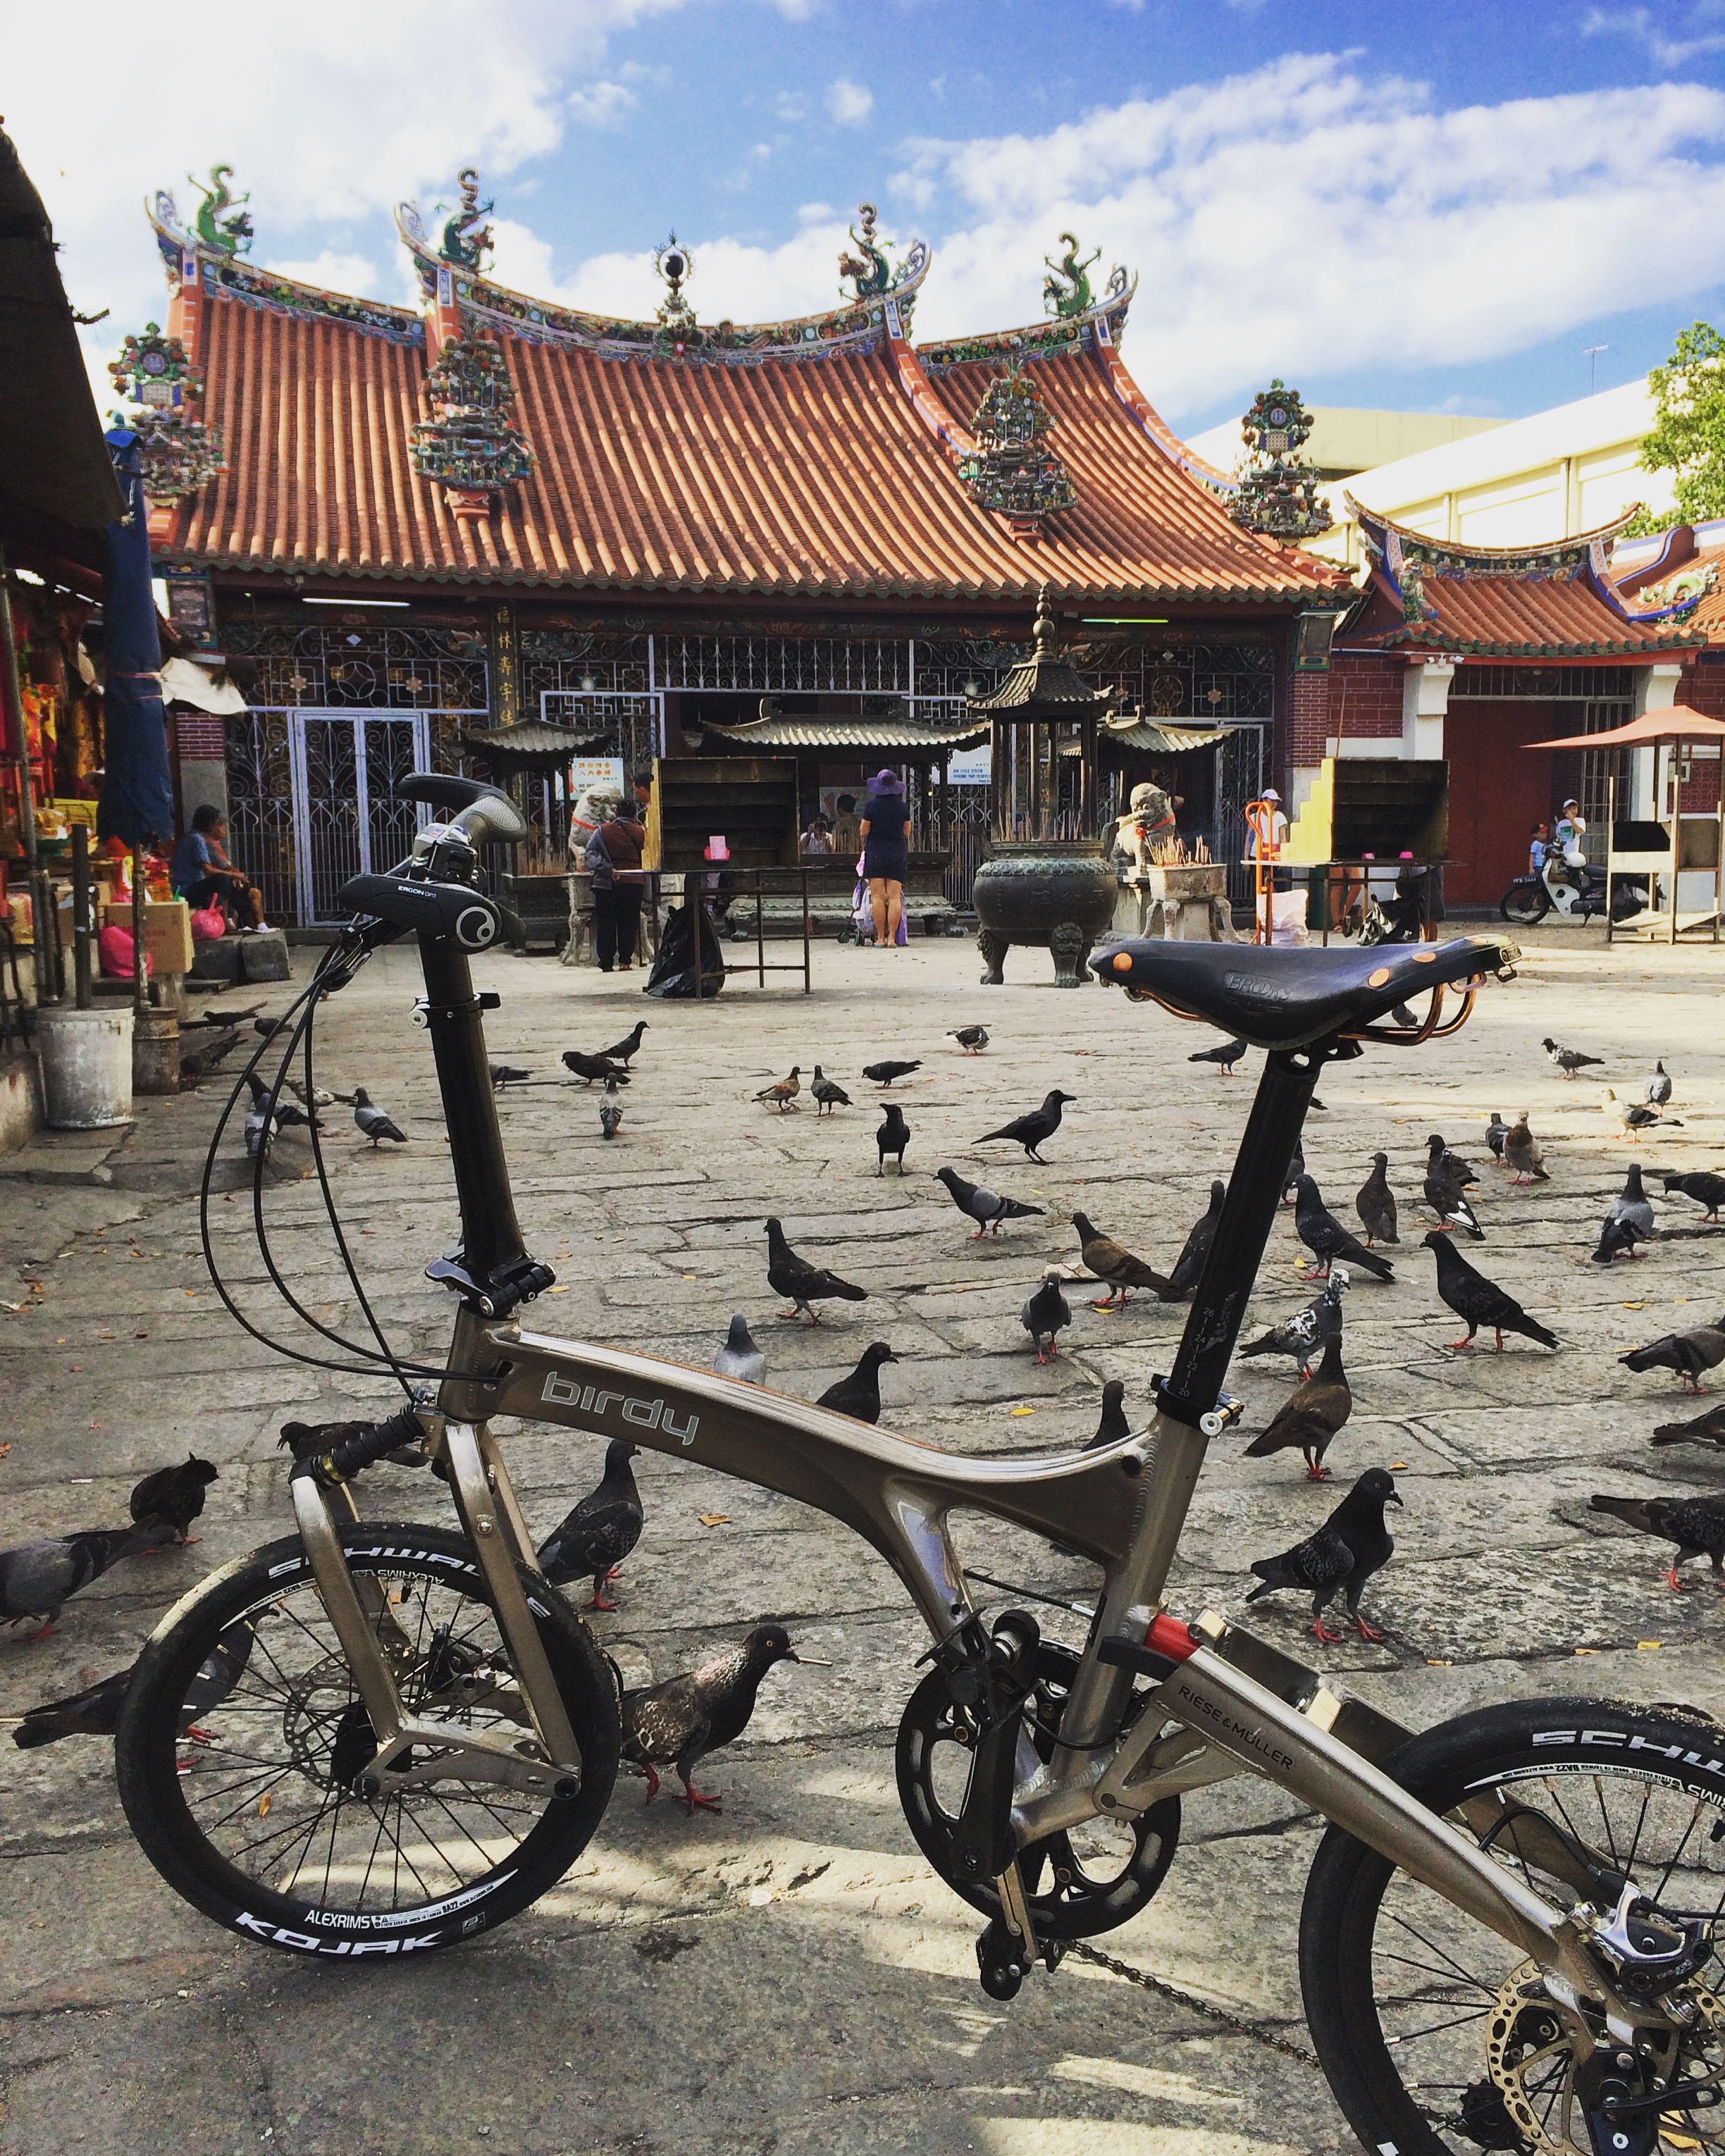 The Birdy special edition hanging out with a flock of birds in Penang.